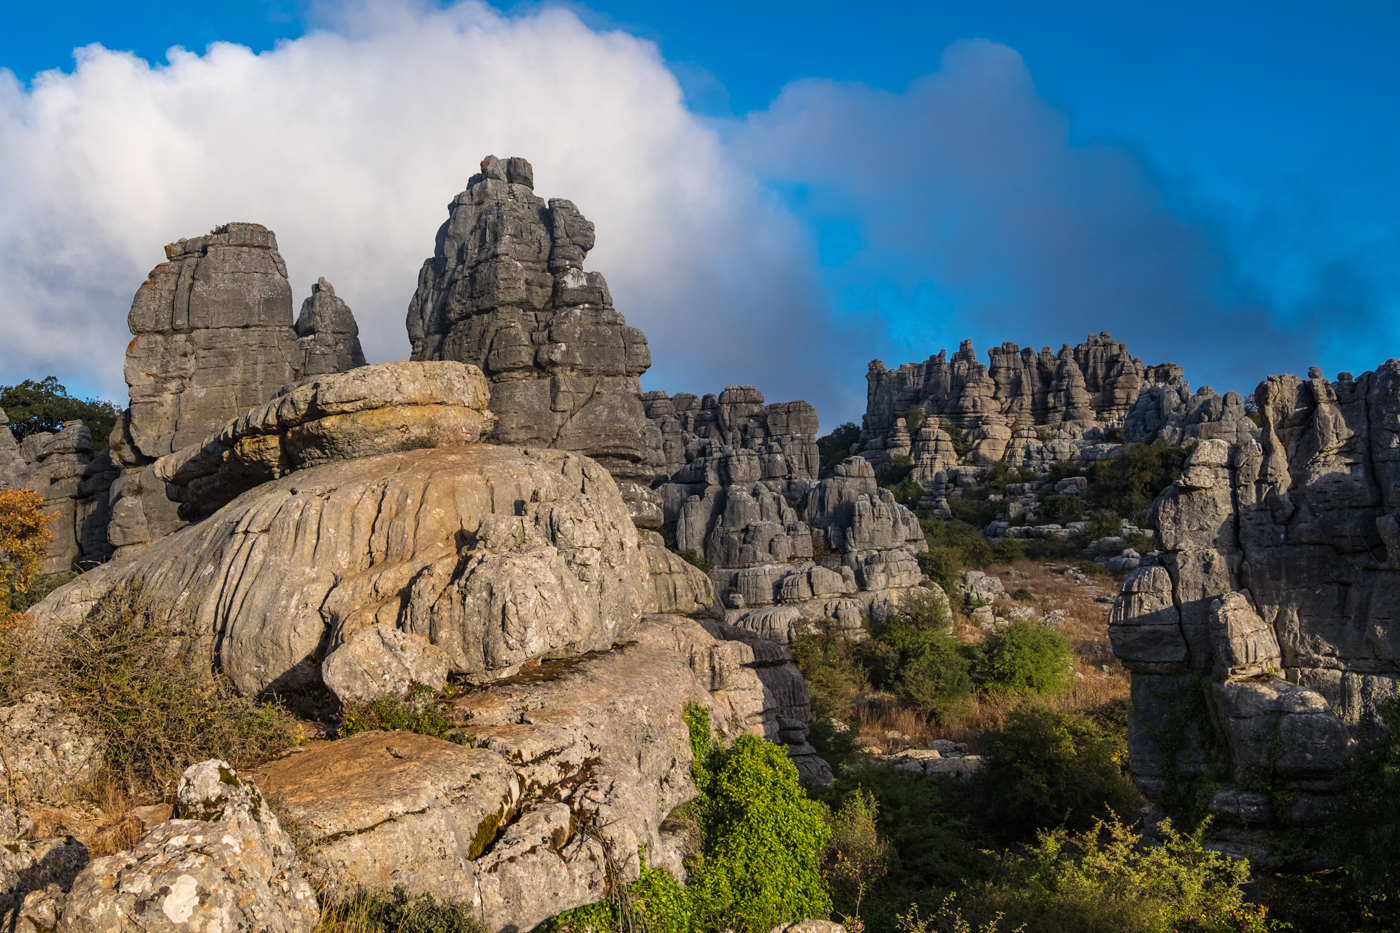 SUNRISE AT EL TORCAL by Chris Reynolds